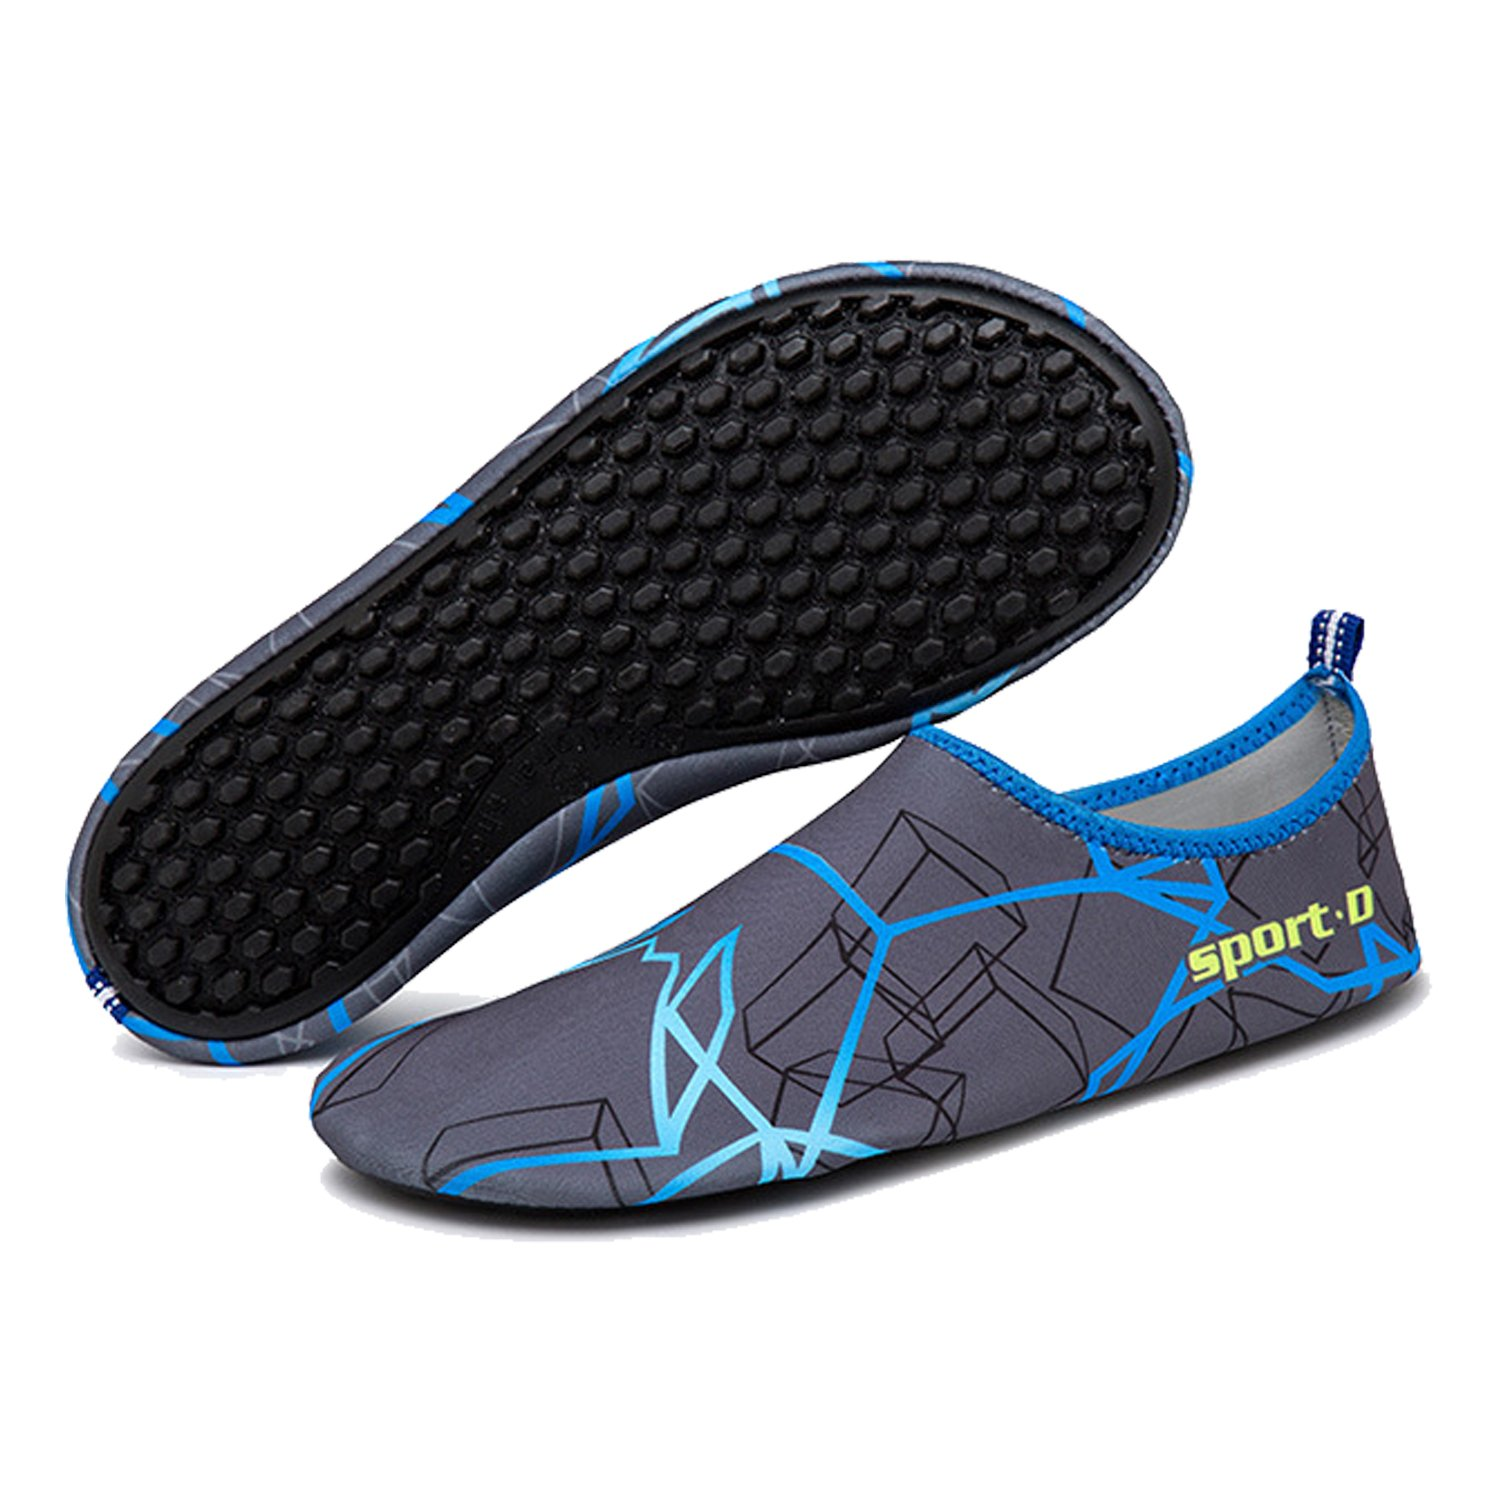 ba knife Water Swim Shoes Mens Womens Beach Swim Water Quick-Dry Aqua Socks Pool Shoes for Surf Yoga Water Aerobics B0746CBGR1 12 B(M) US Women / 10 D(M) US Men|Gradient Blue 91d751